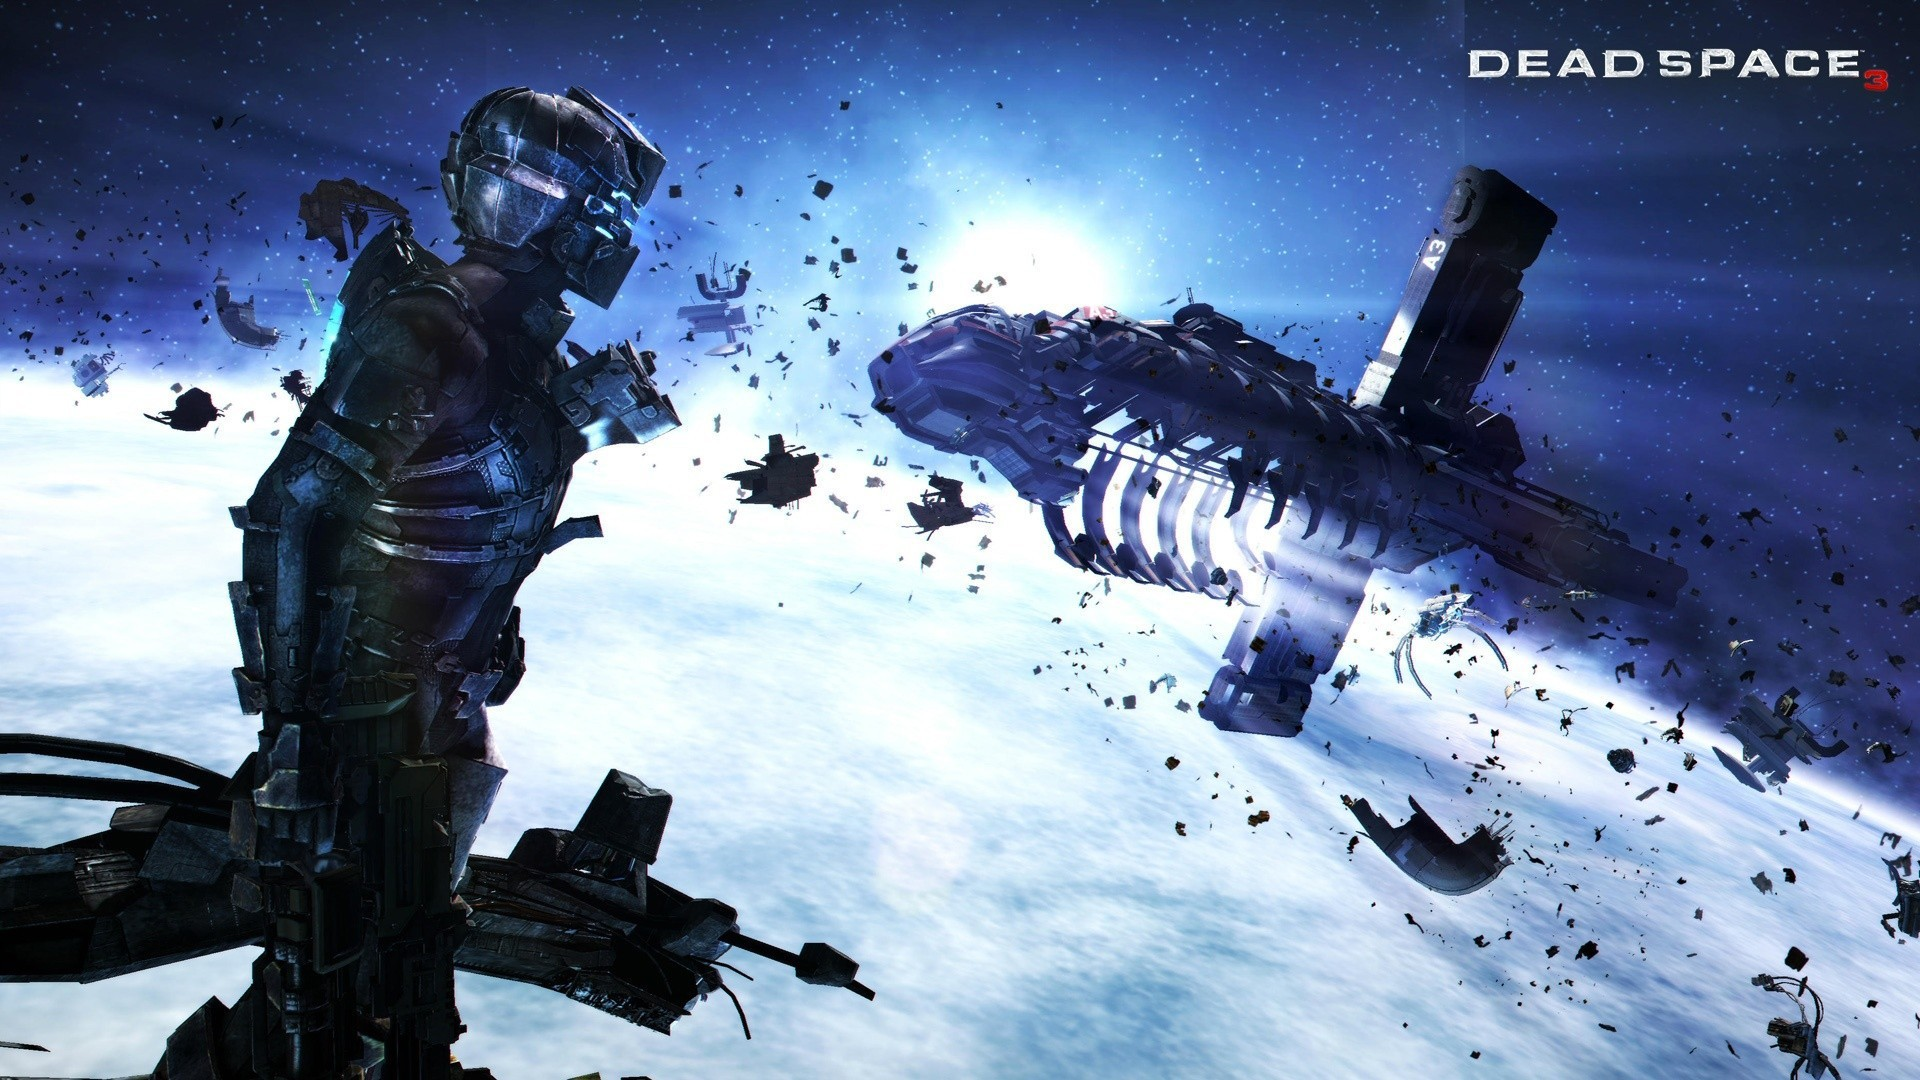 1920x1080 Video games dead space 3 wallpaper